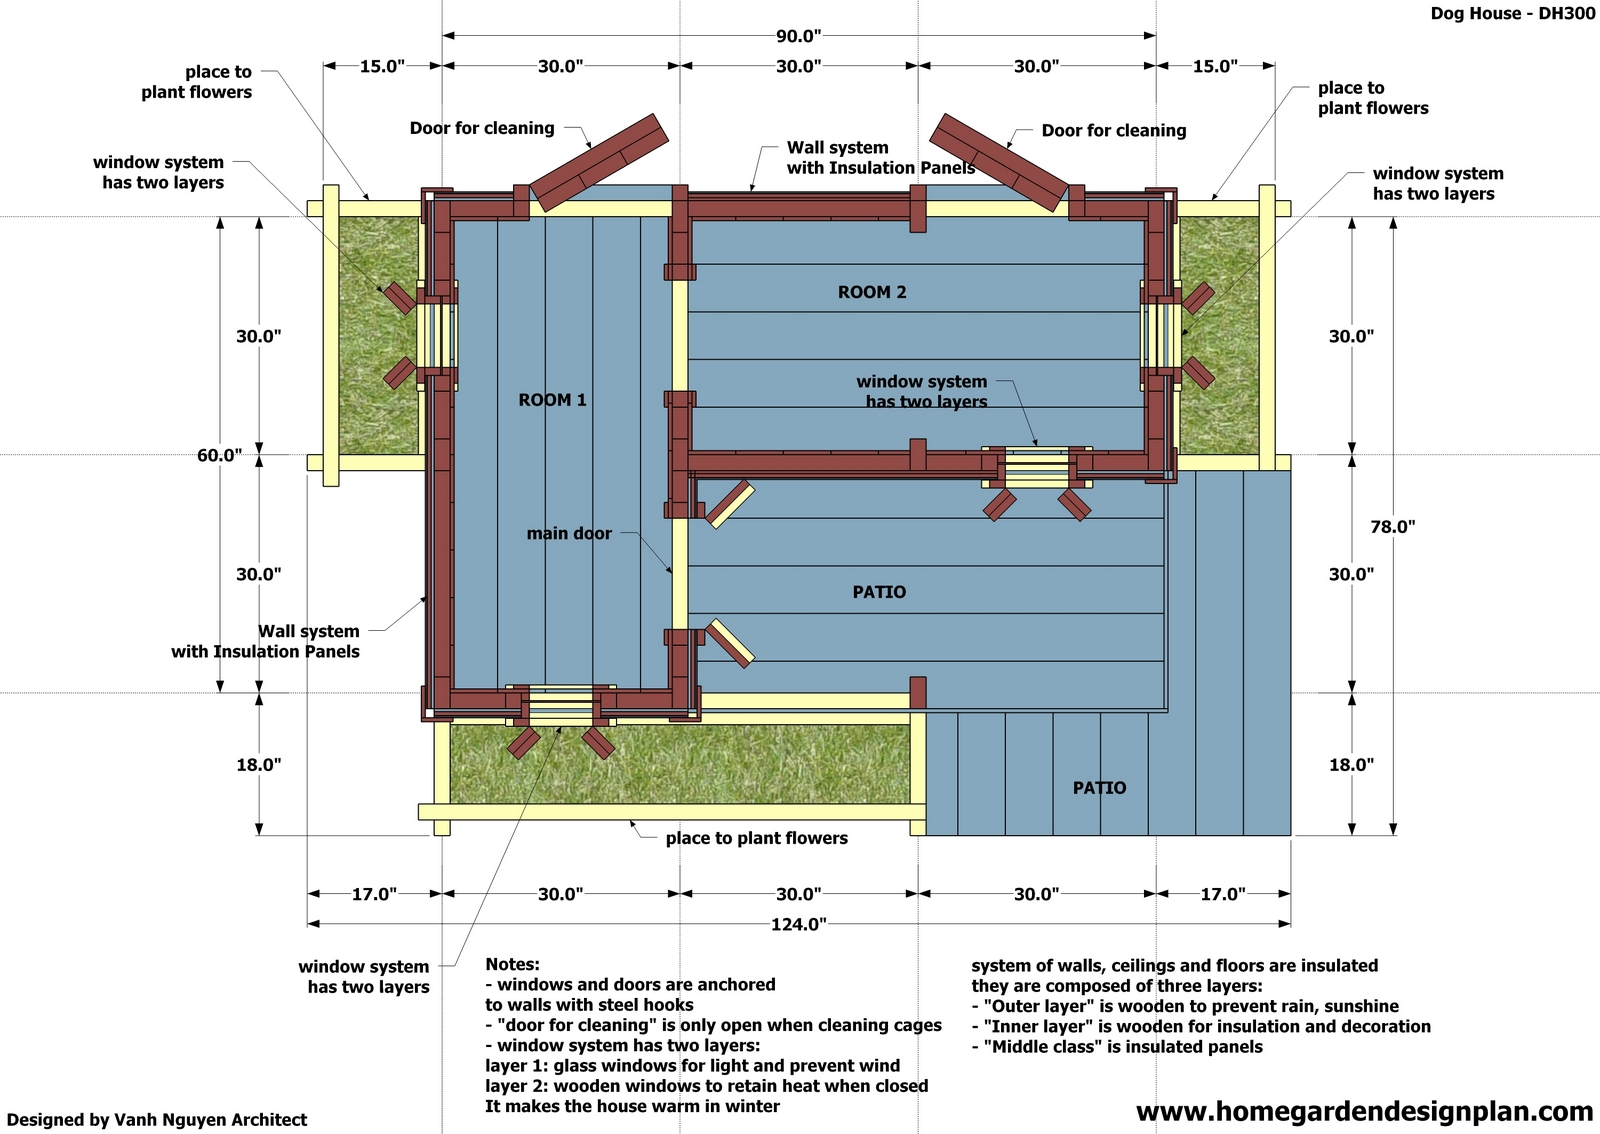 Home garden plans dh300 dog house plans free how to Building layout plan free